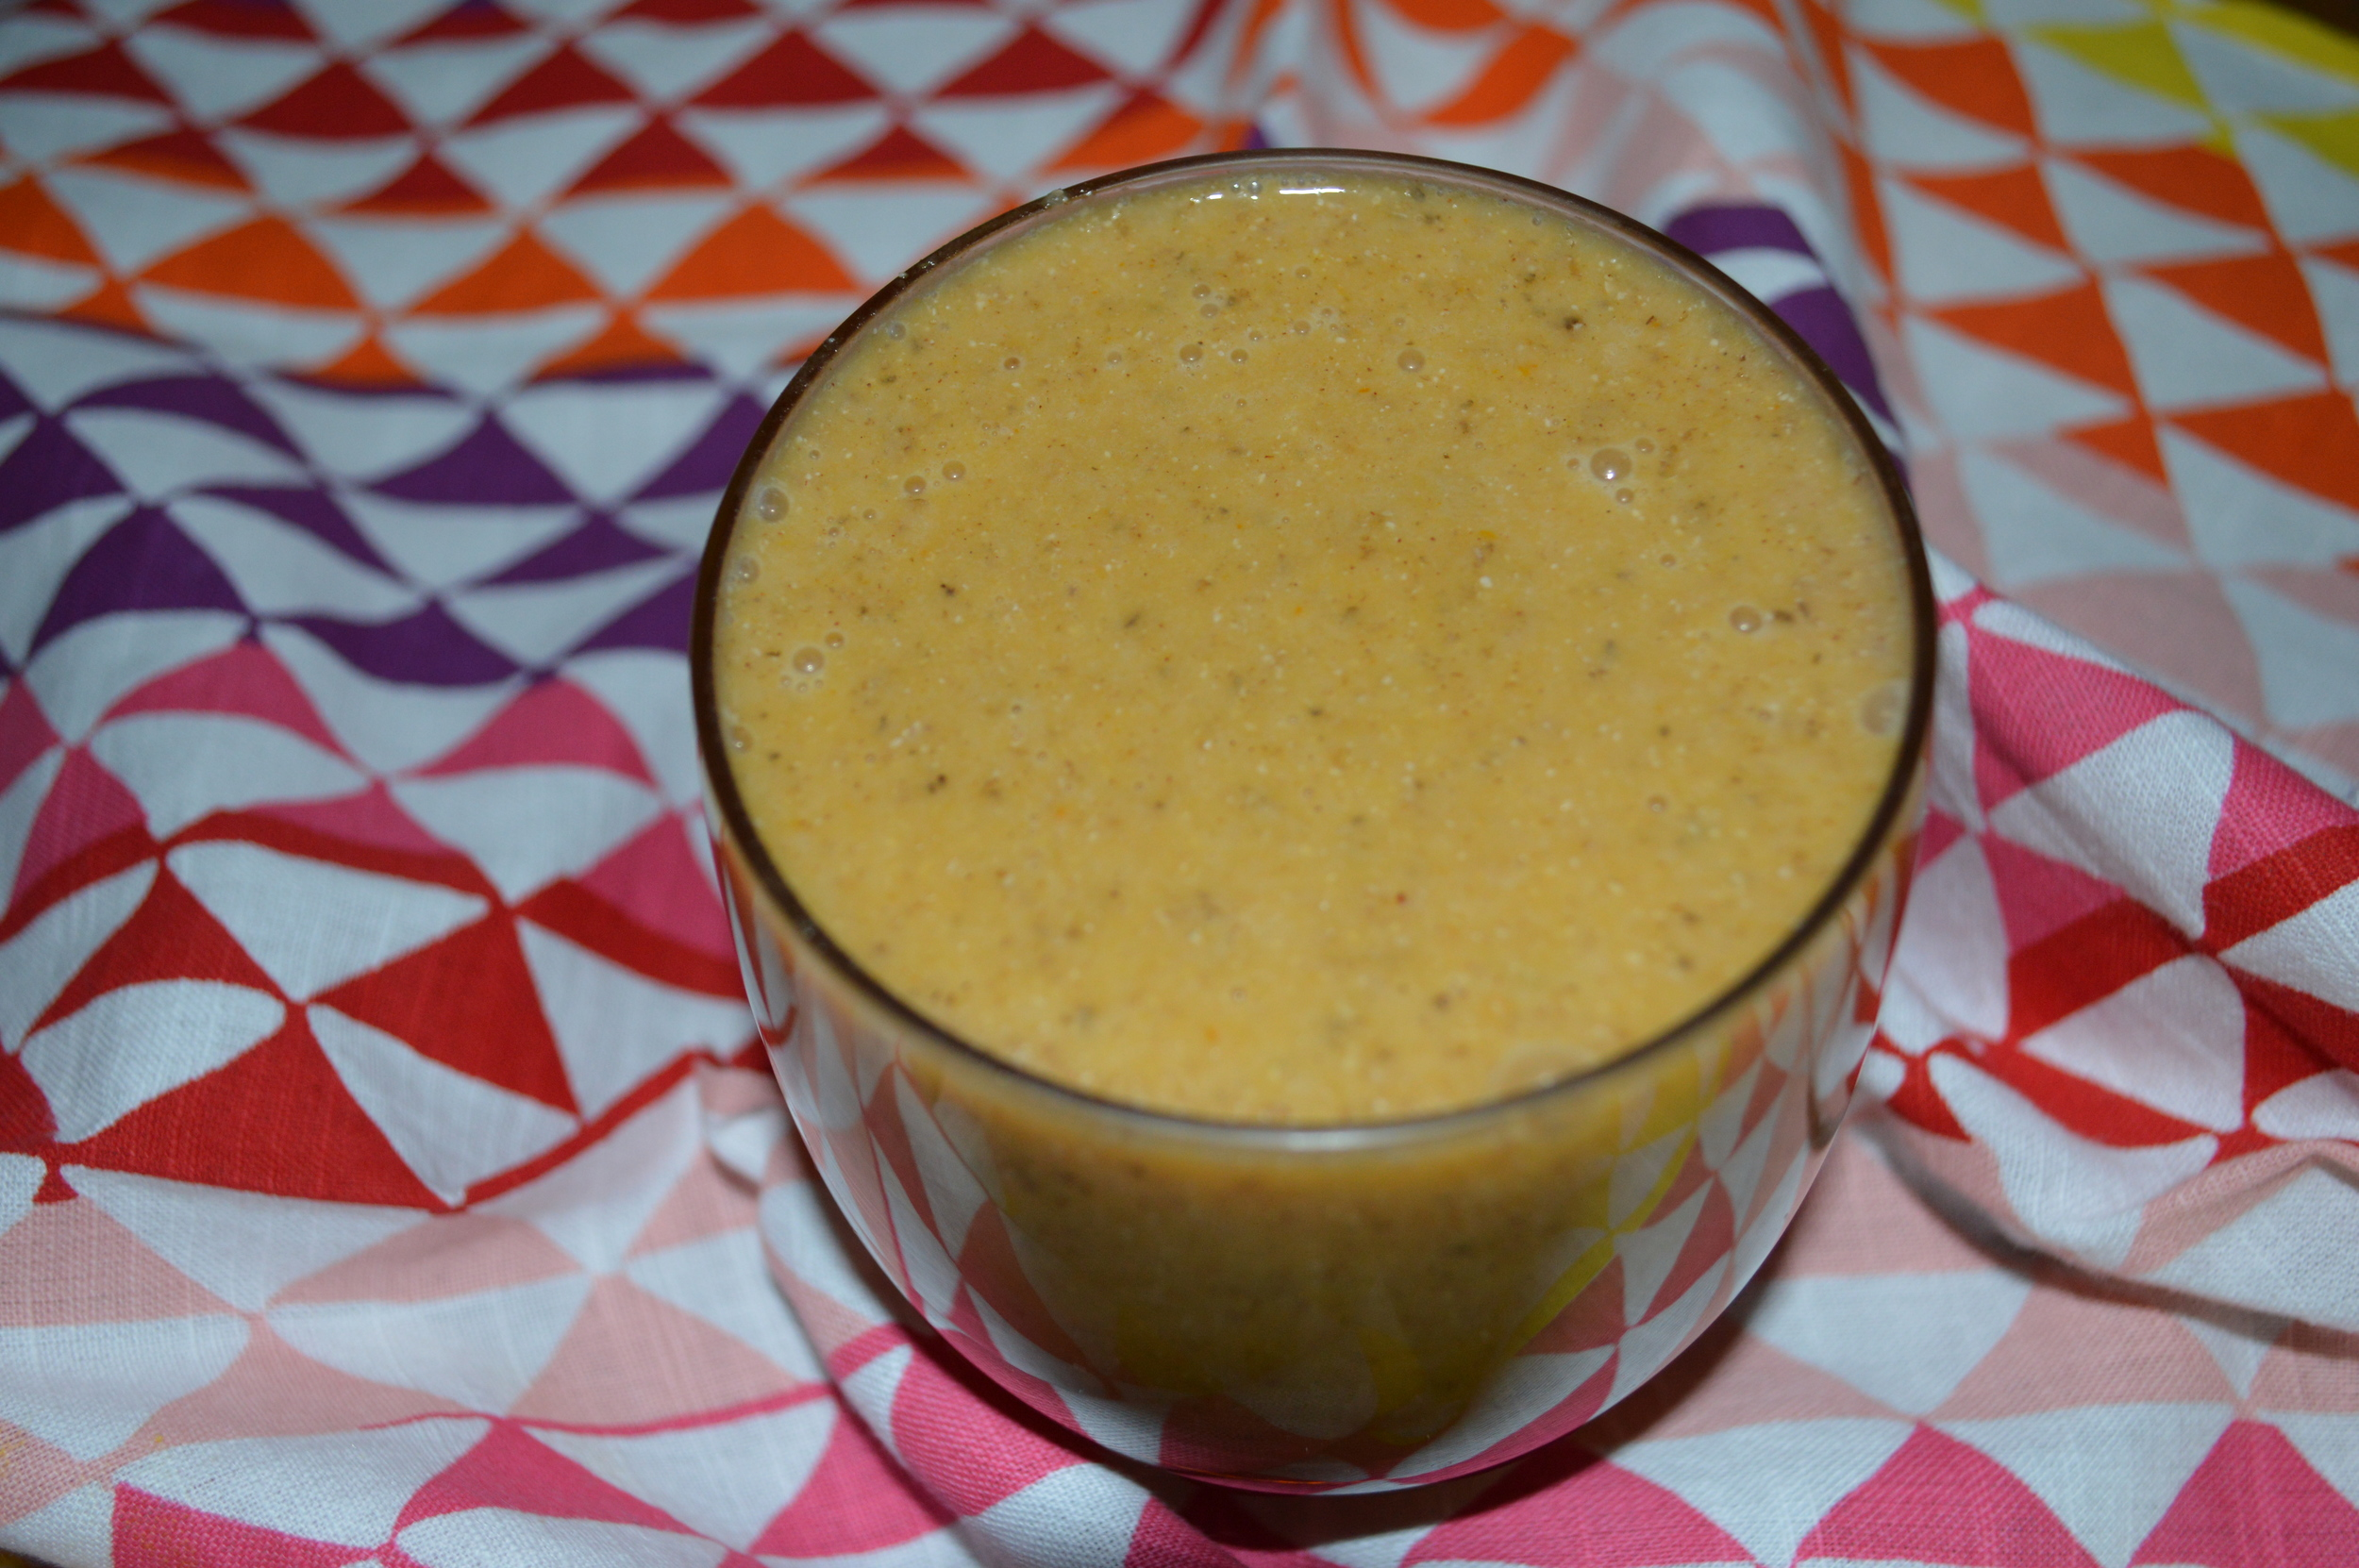 Apple & Pumkin Smoothie